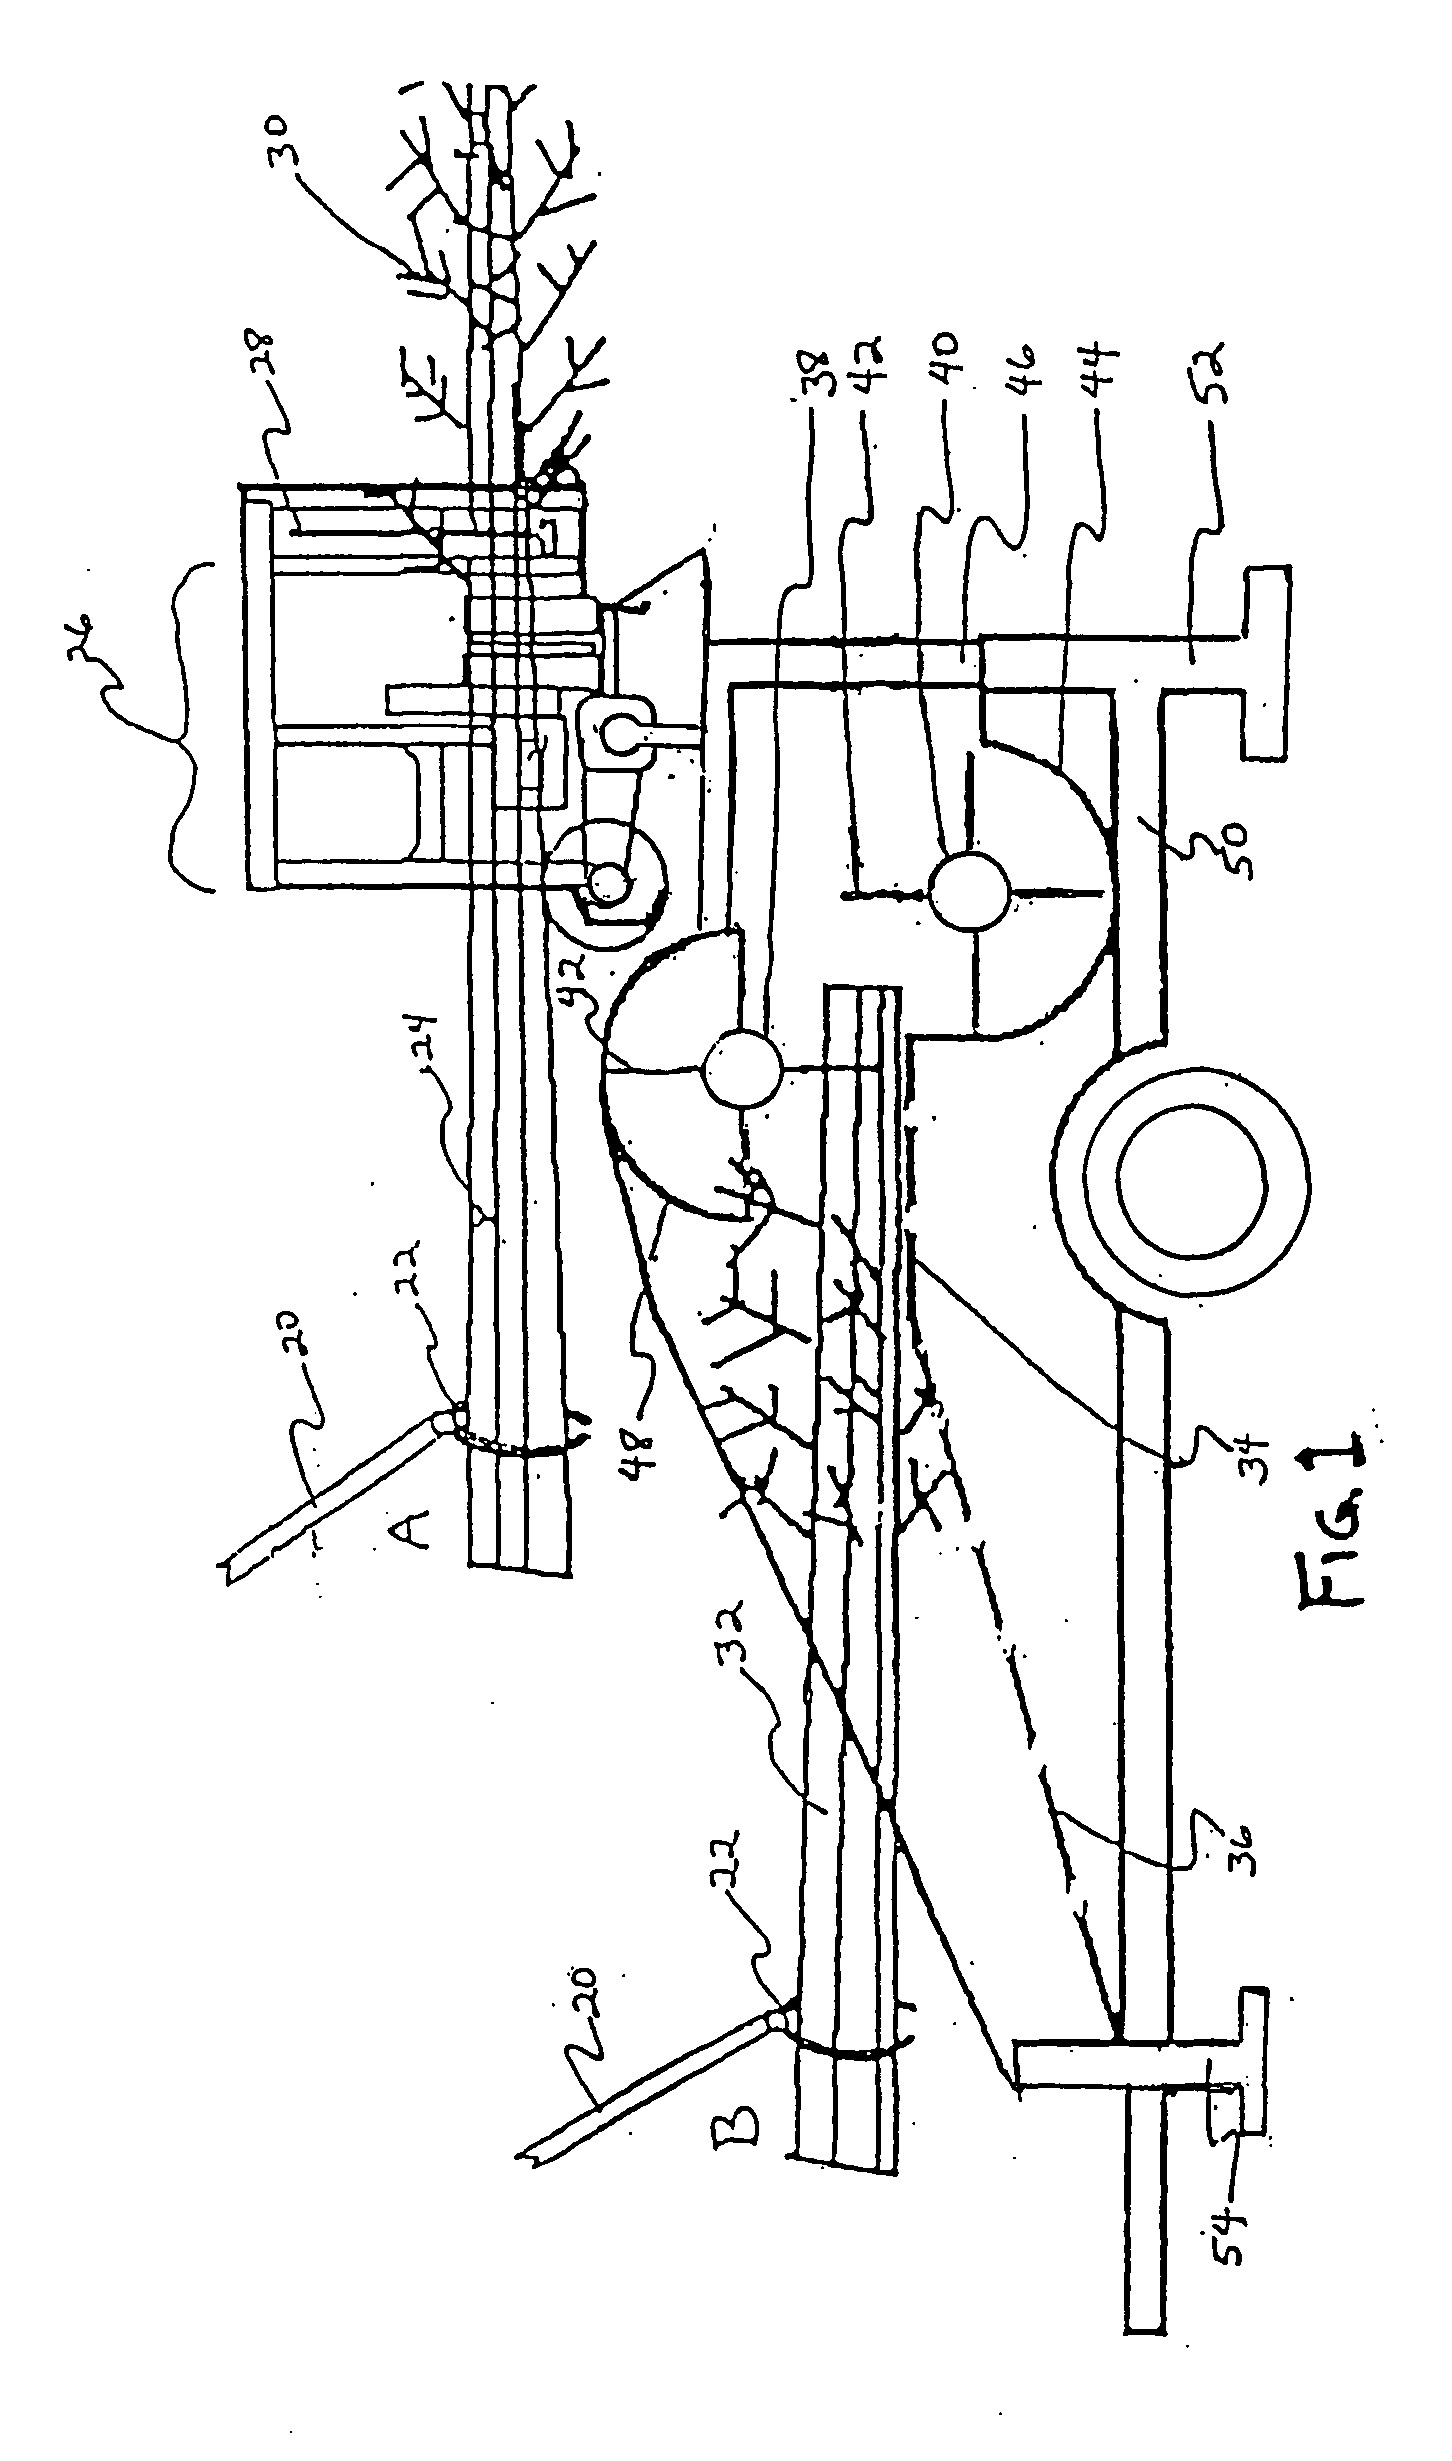 Patent US20050034784 - Stripper and flail delimber and